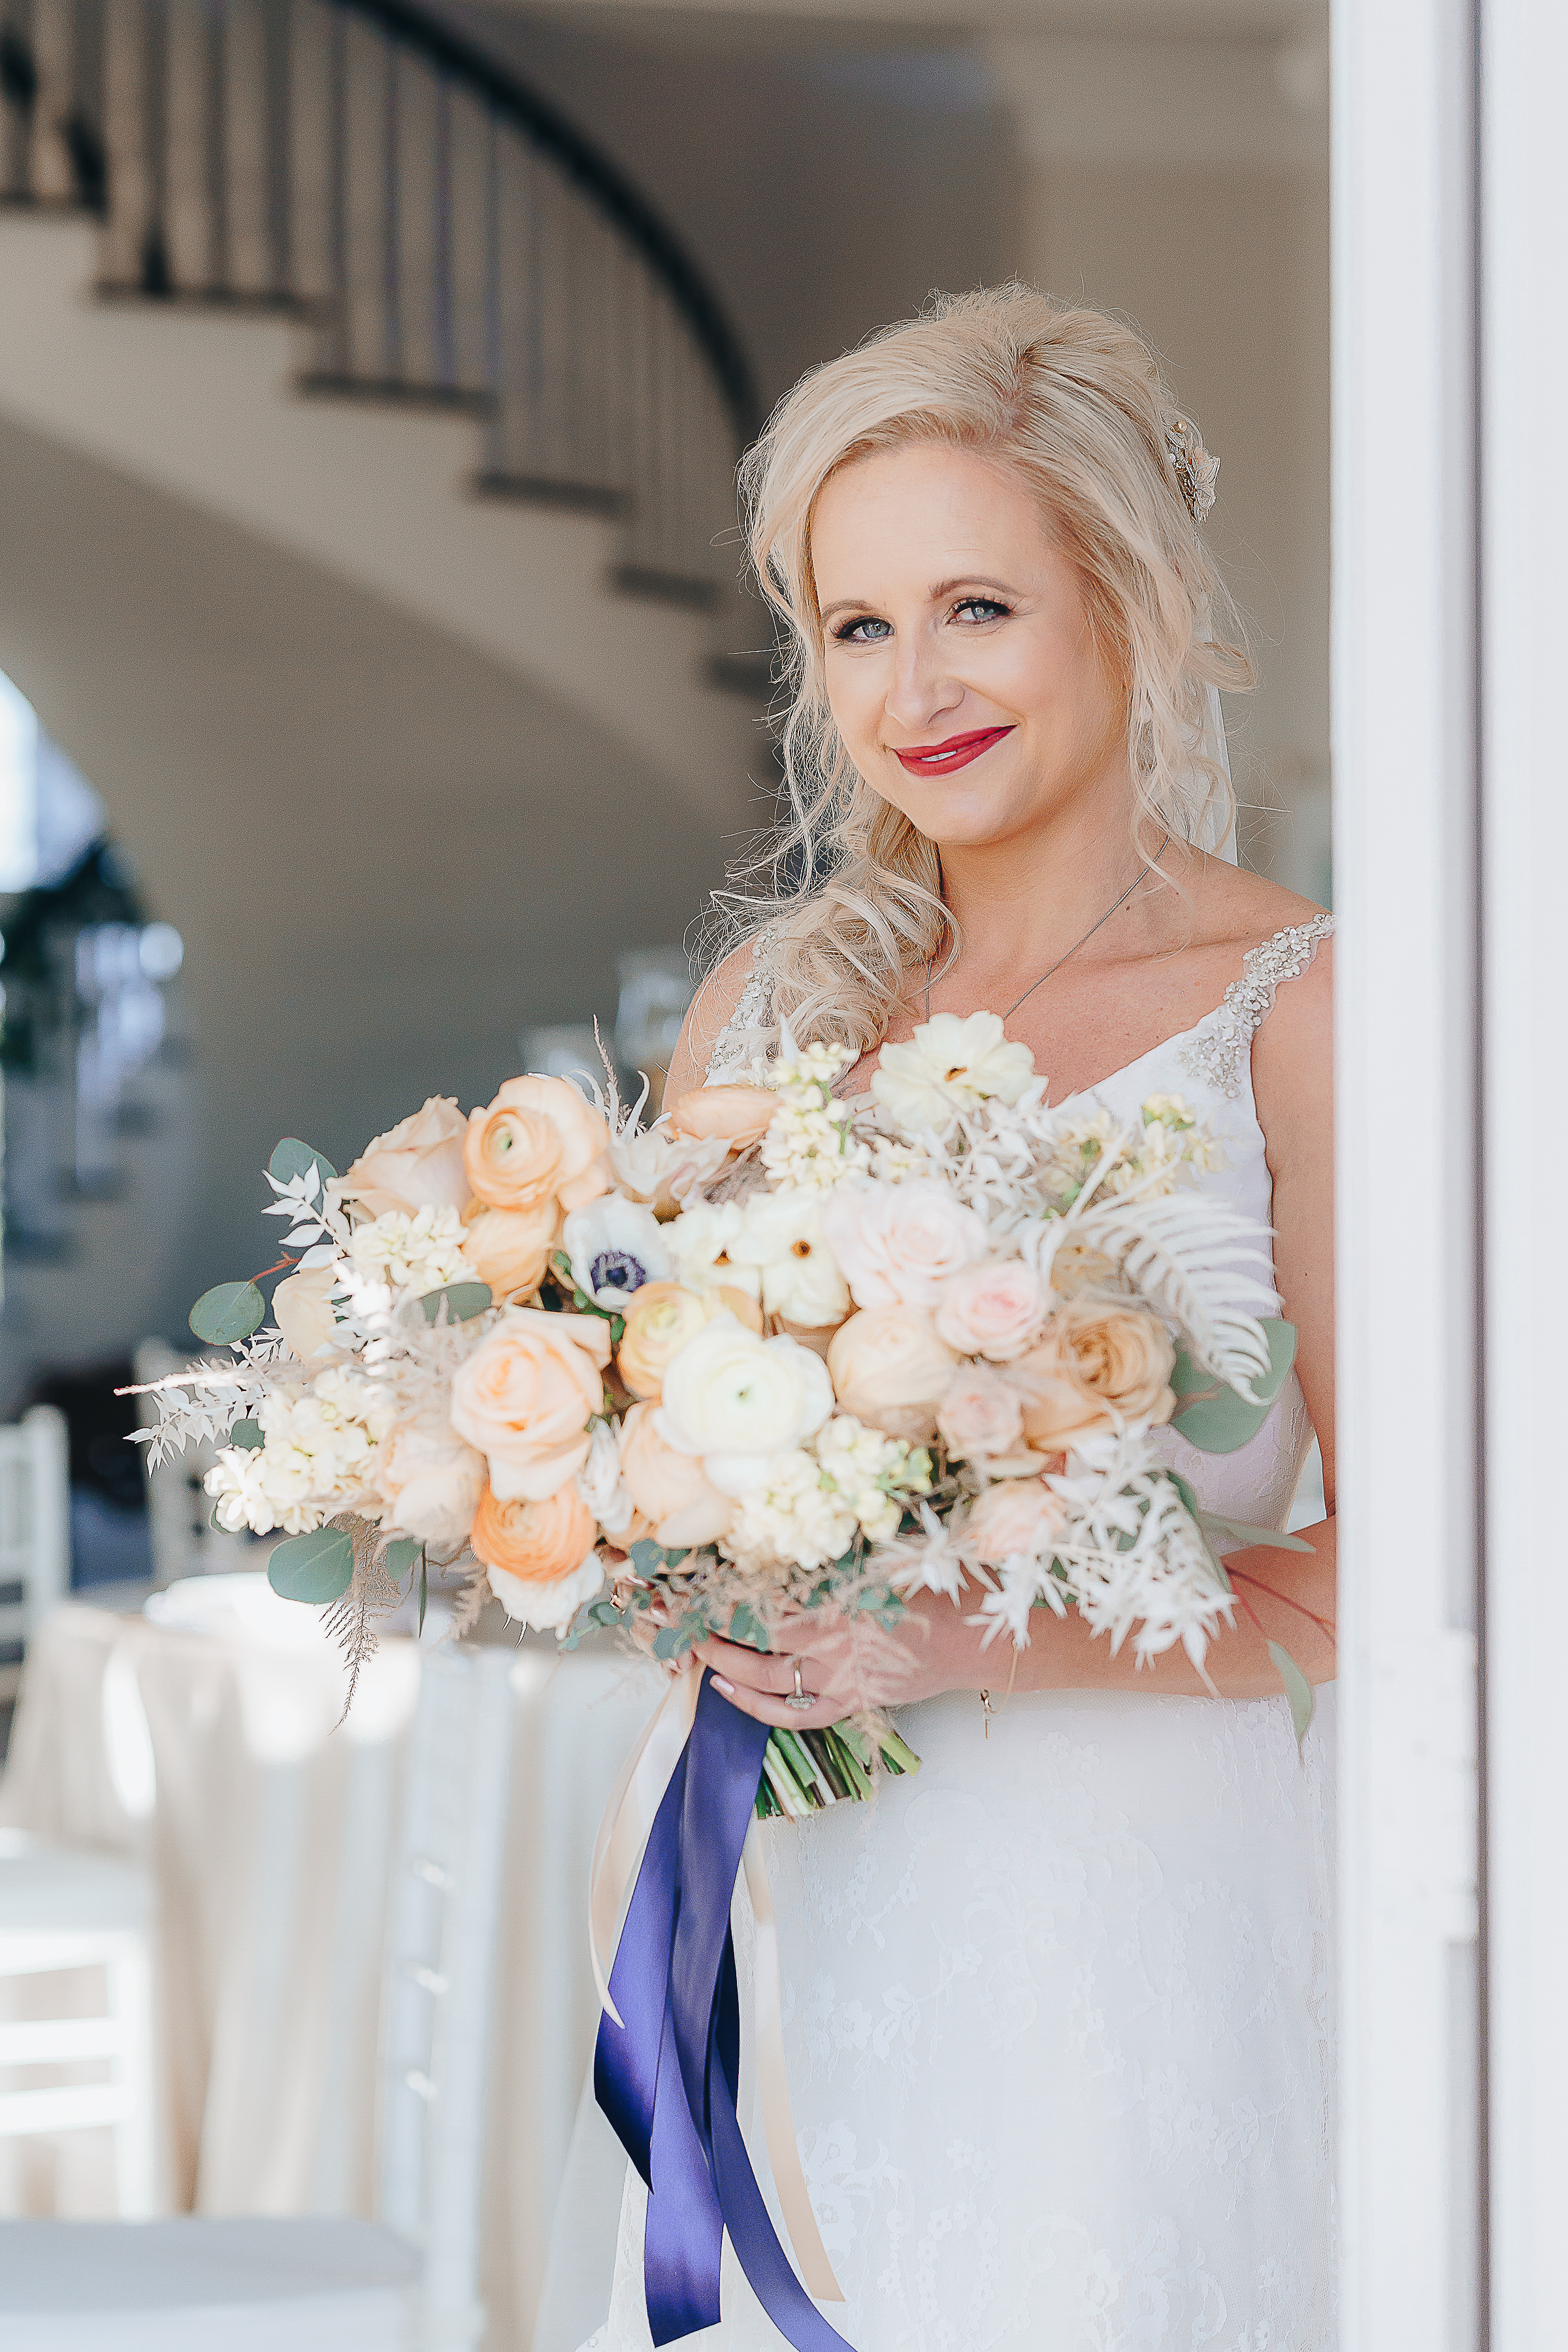 Bride holding a bouquet of blush, peach and white flowers tied by a navy ribbon.